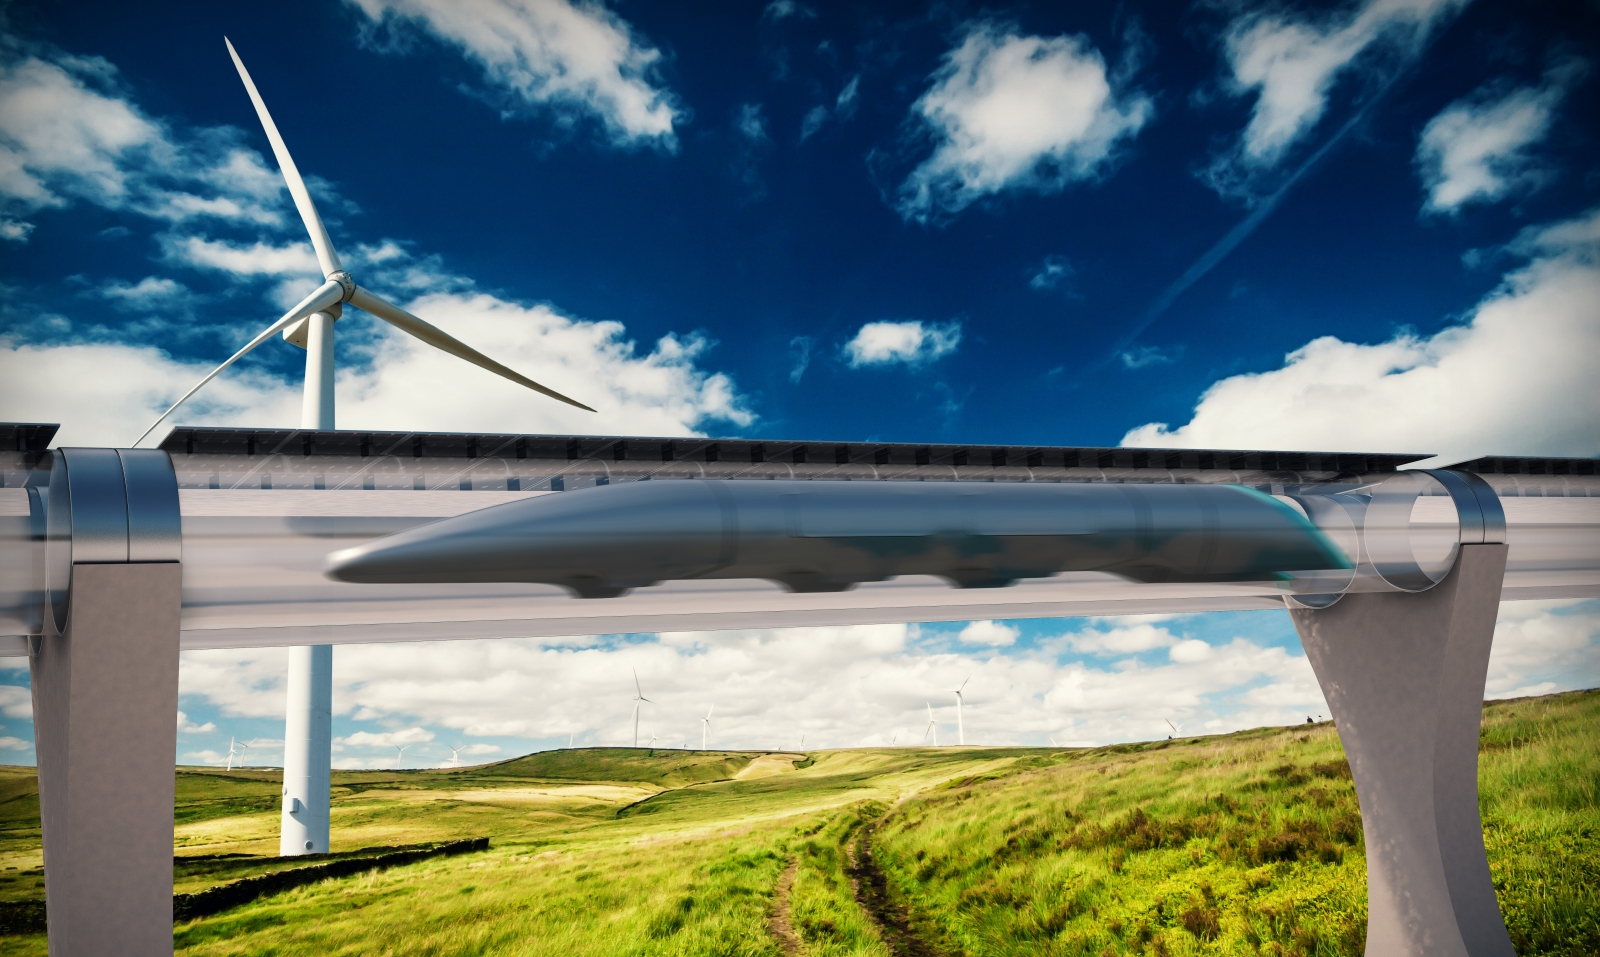 Hyperloop quay valley elon musk